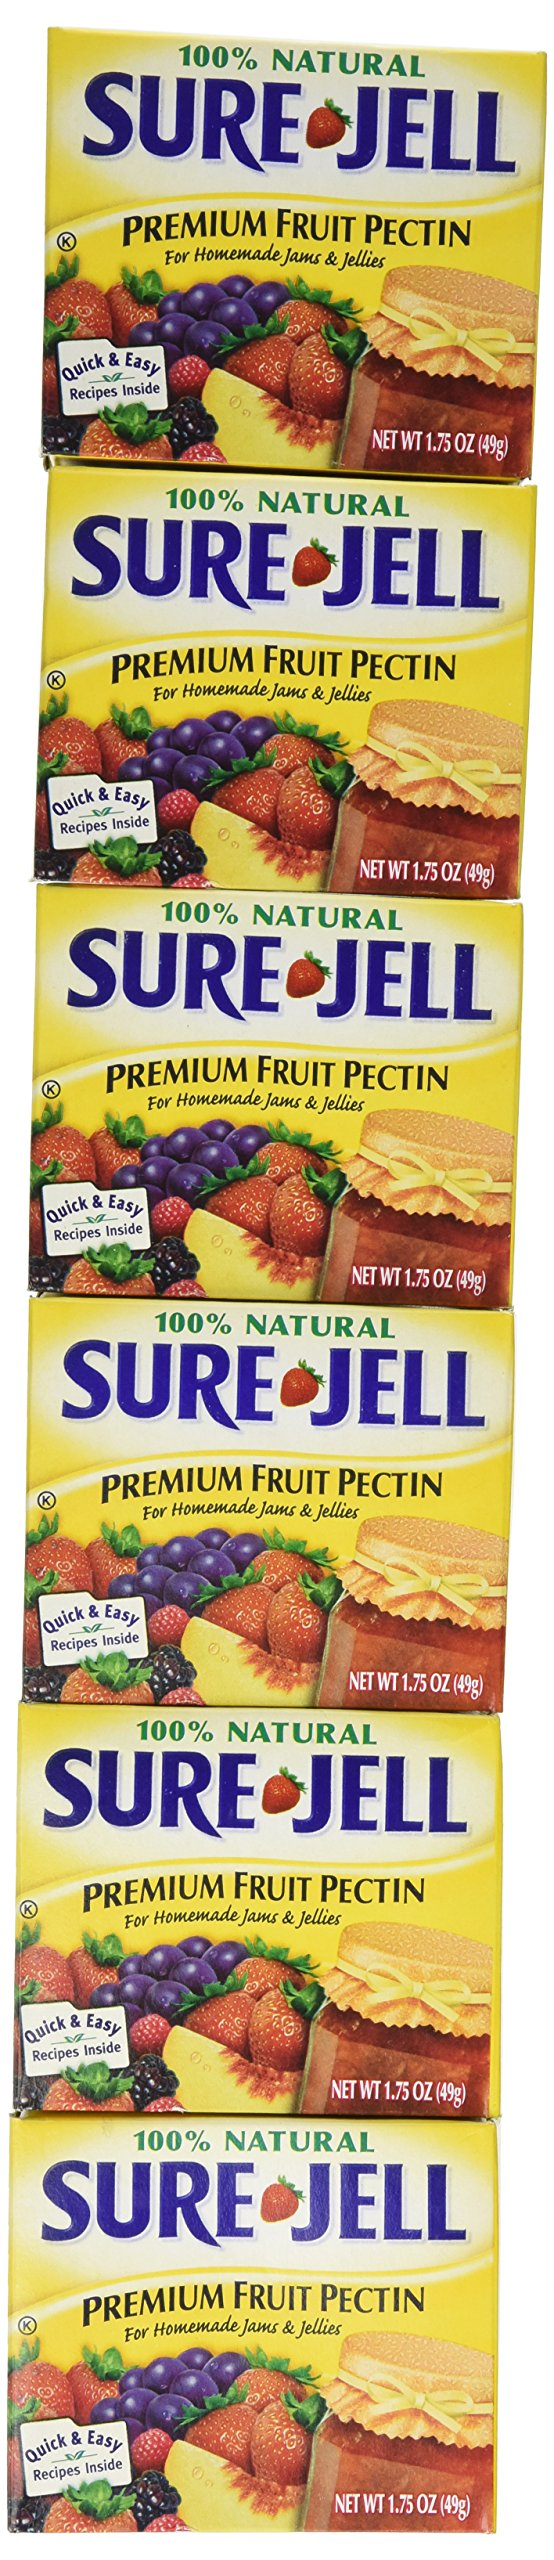 Sure-jell Premium Fruit Pectin,for Homemade Jams and Jellies 100% Natural 1.75-ounce Boxes (Case of 24)